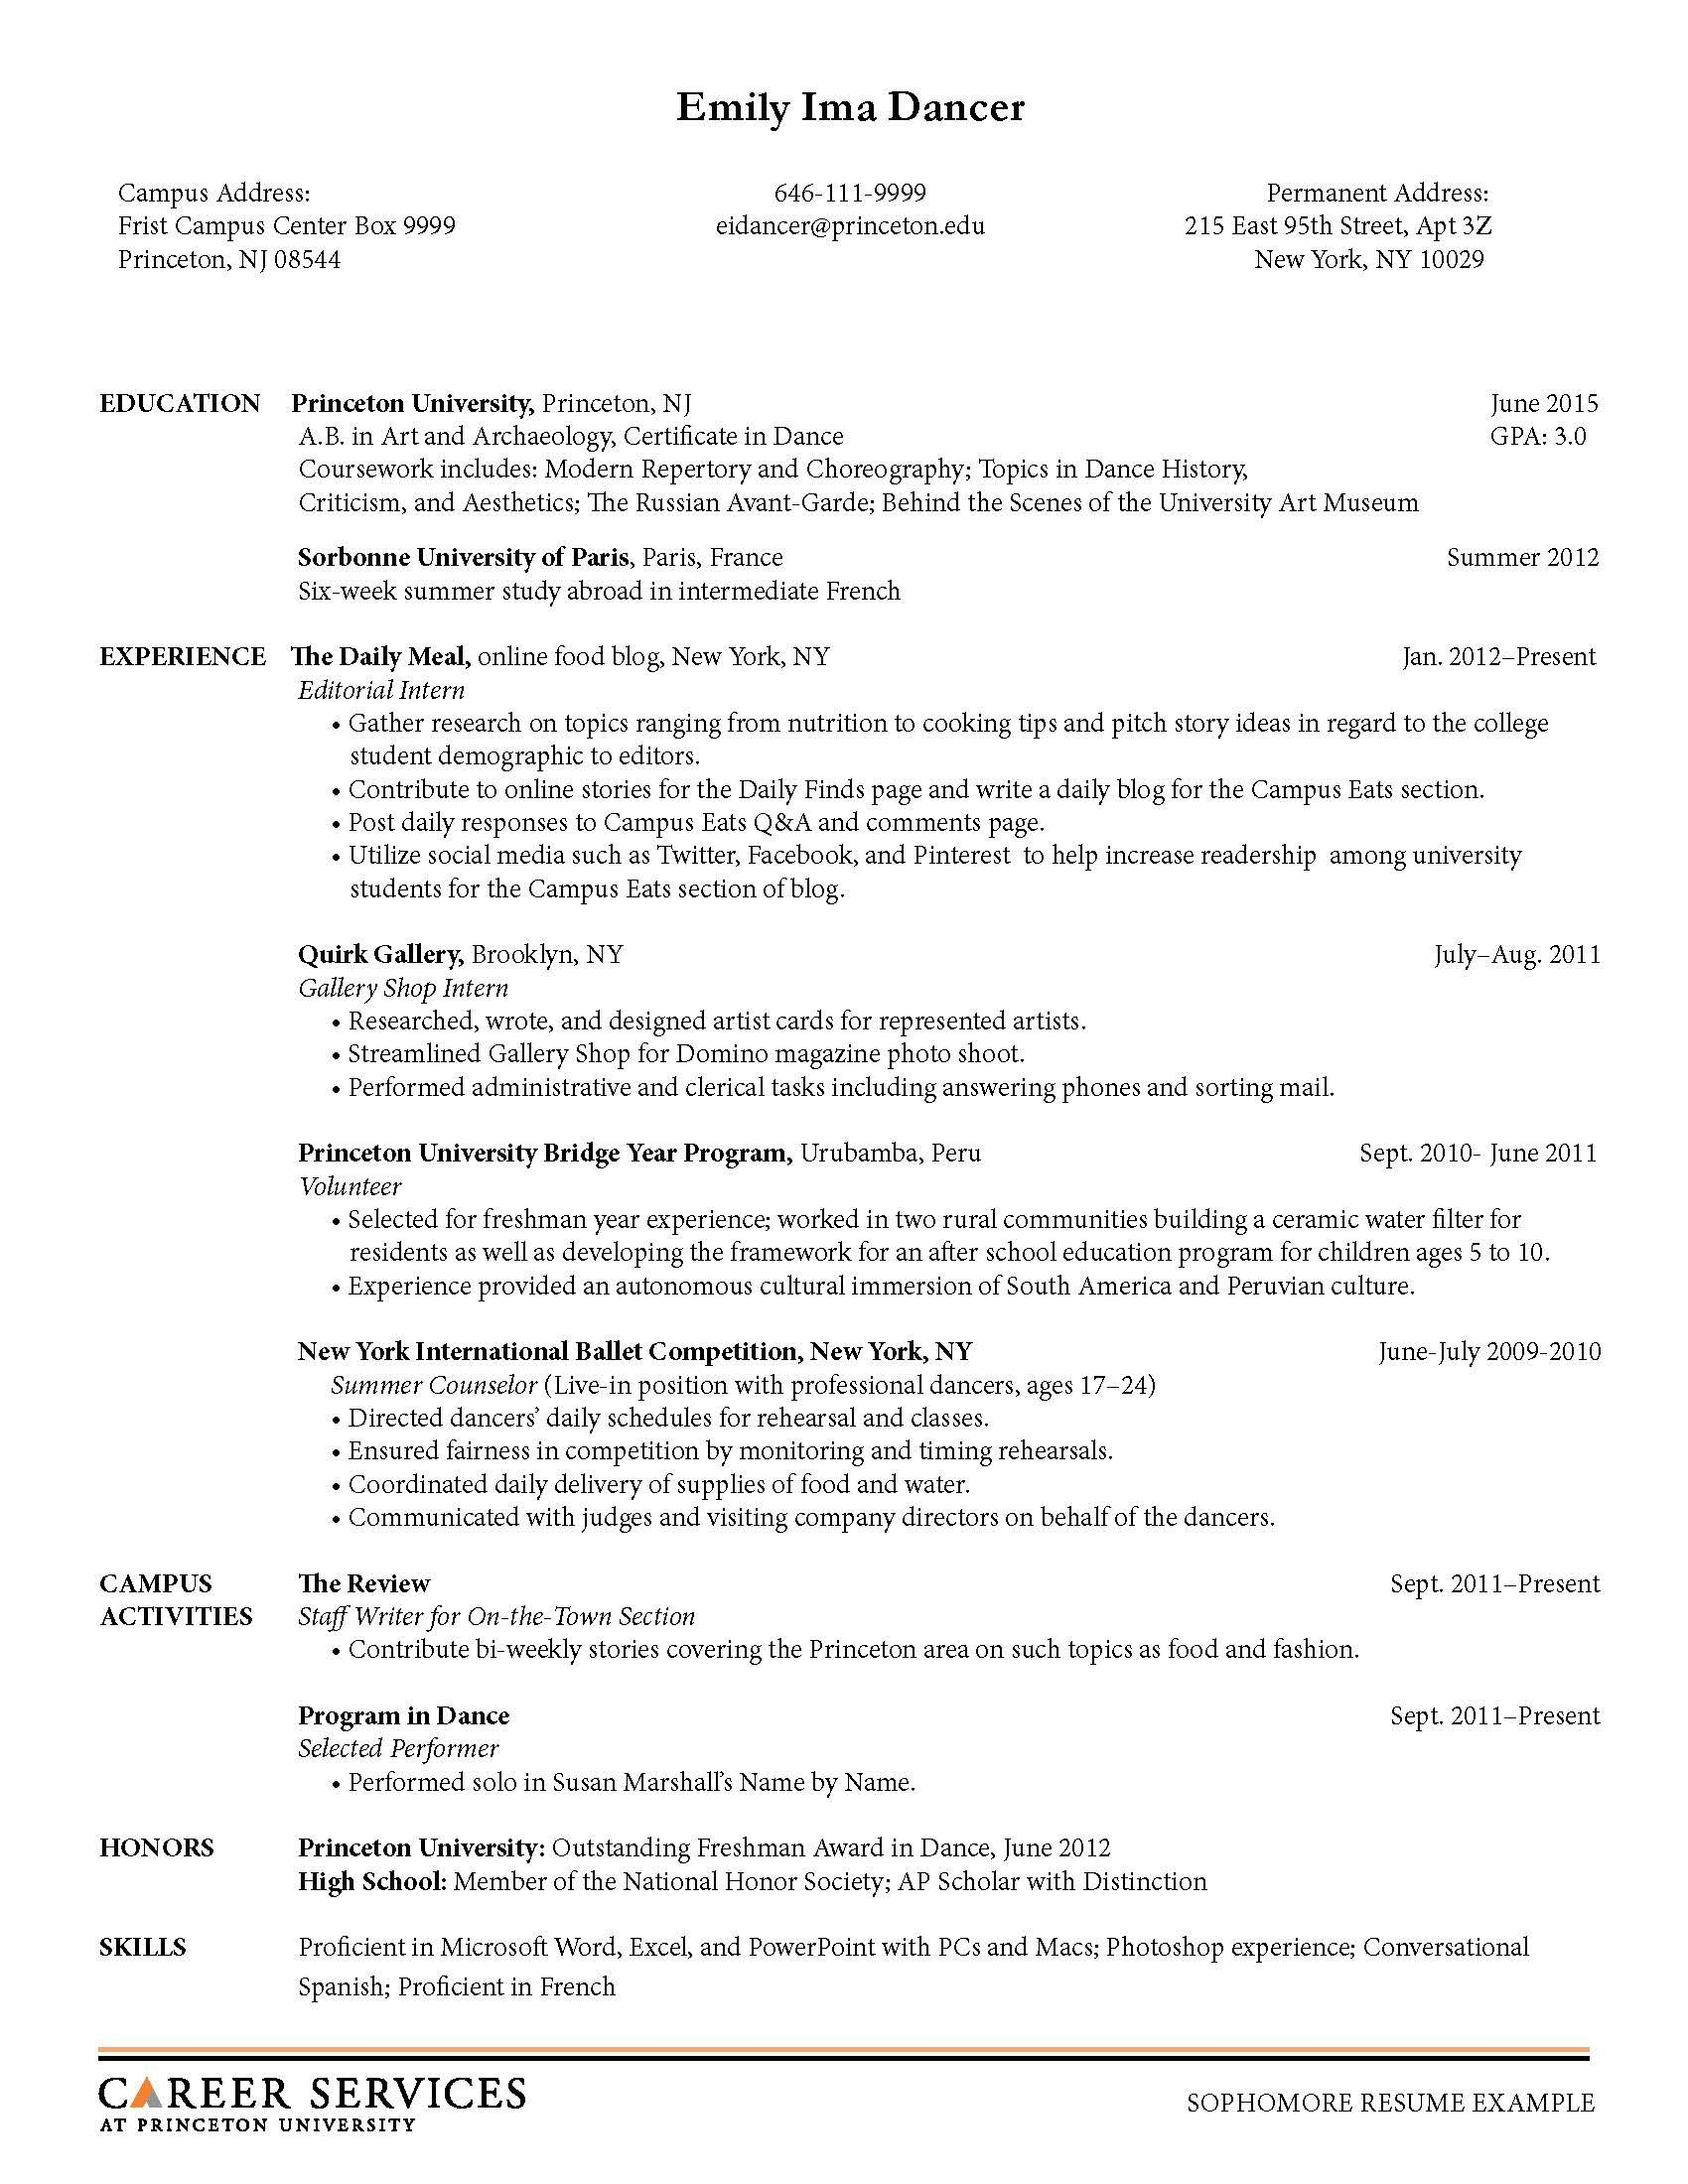 Opposenewapstandardsus  Pleasant Sample Resume Resume And Career On Pinterest With Exquisite User Experience Resume Besides Resume Sales Skills Furthermore Skills You Can Put On A Resume With Astounding Resume Office Manager Also Resume Current Job In Addition Creative Professional Resumes And How To Create A Resume On Word  As Well As Build Me A Resume Additionally Resume For College Application Template From Pinterestcom With Opposenewapstandardsus  Exquisite Sample Resume Resume And Career On Pinterest With Astounding User Experience Resume Besides Resume Sales Skills Furthermore Skills You Can Put On A Resume And Pleasant Resume Office Manager Also Resume Current Job In Addition Creative Professional Resumes From Pinterestcom